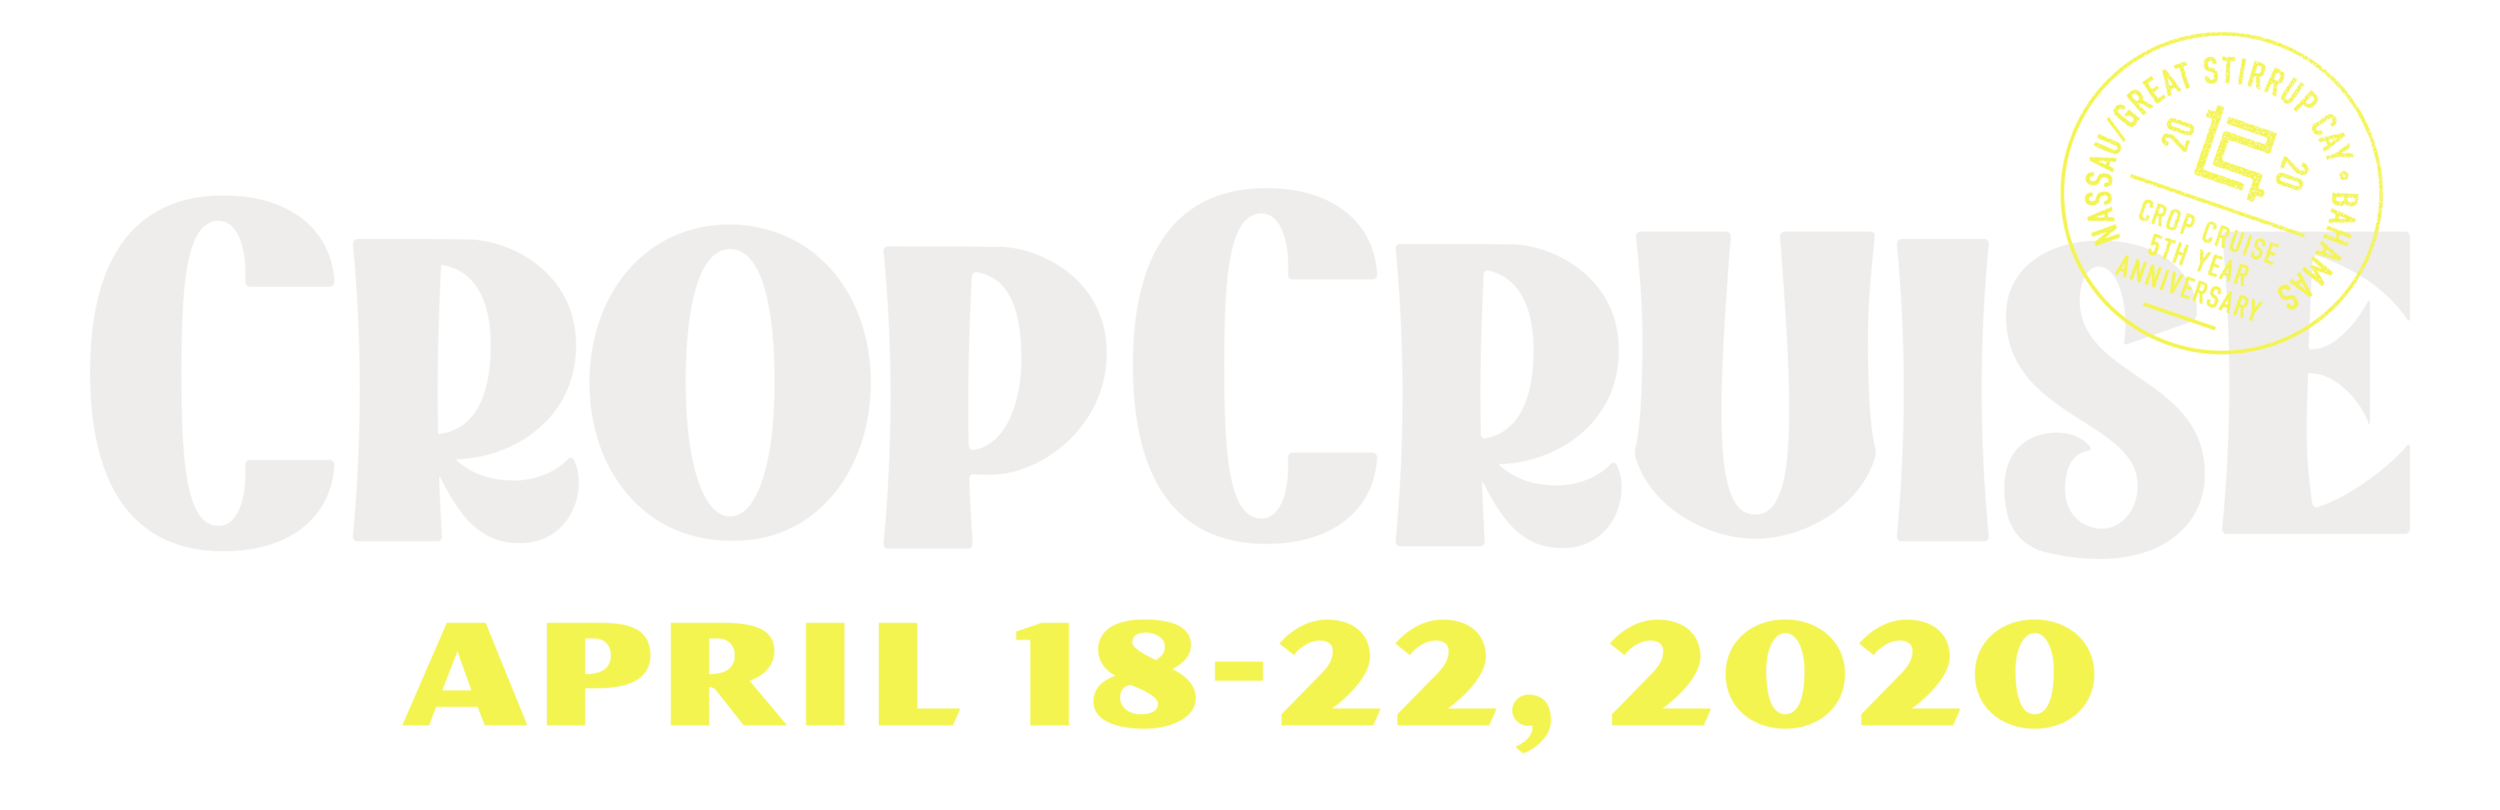 Crop Cruise Site Logo copy.png